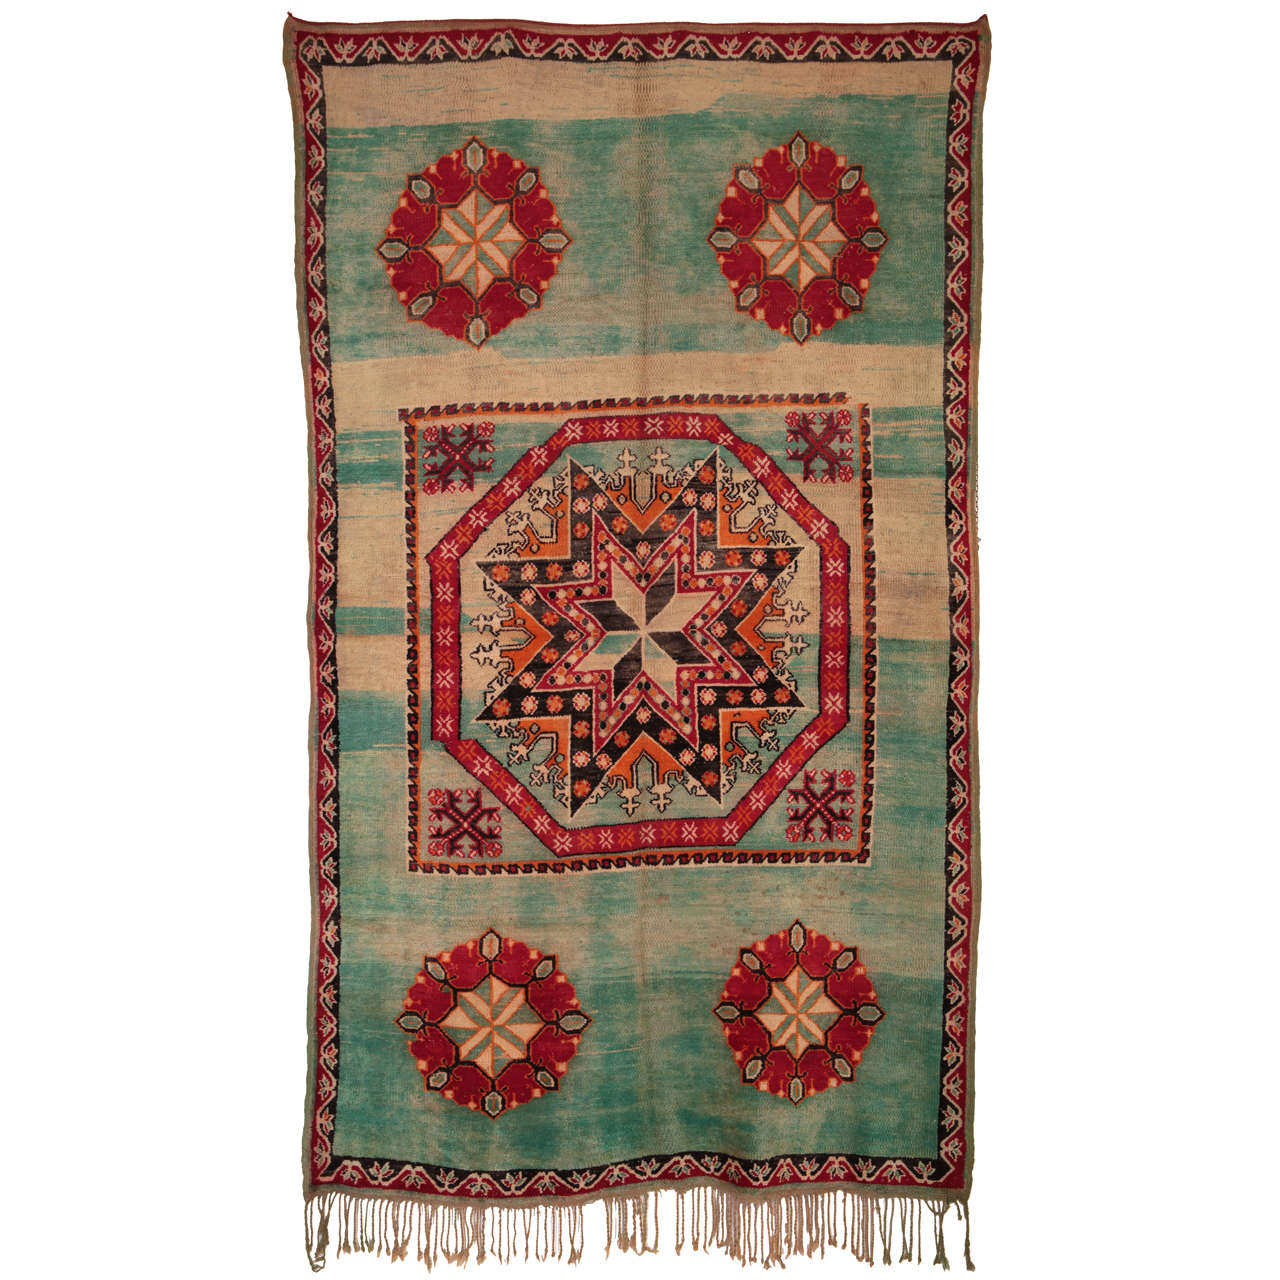 Moroccan Boucherouite Rug For Sale At 1stdibs: Moroccan Star Octagon Carpet For Sale At 1stdibs